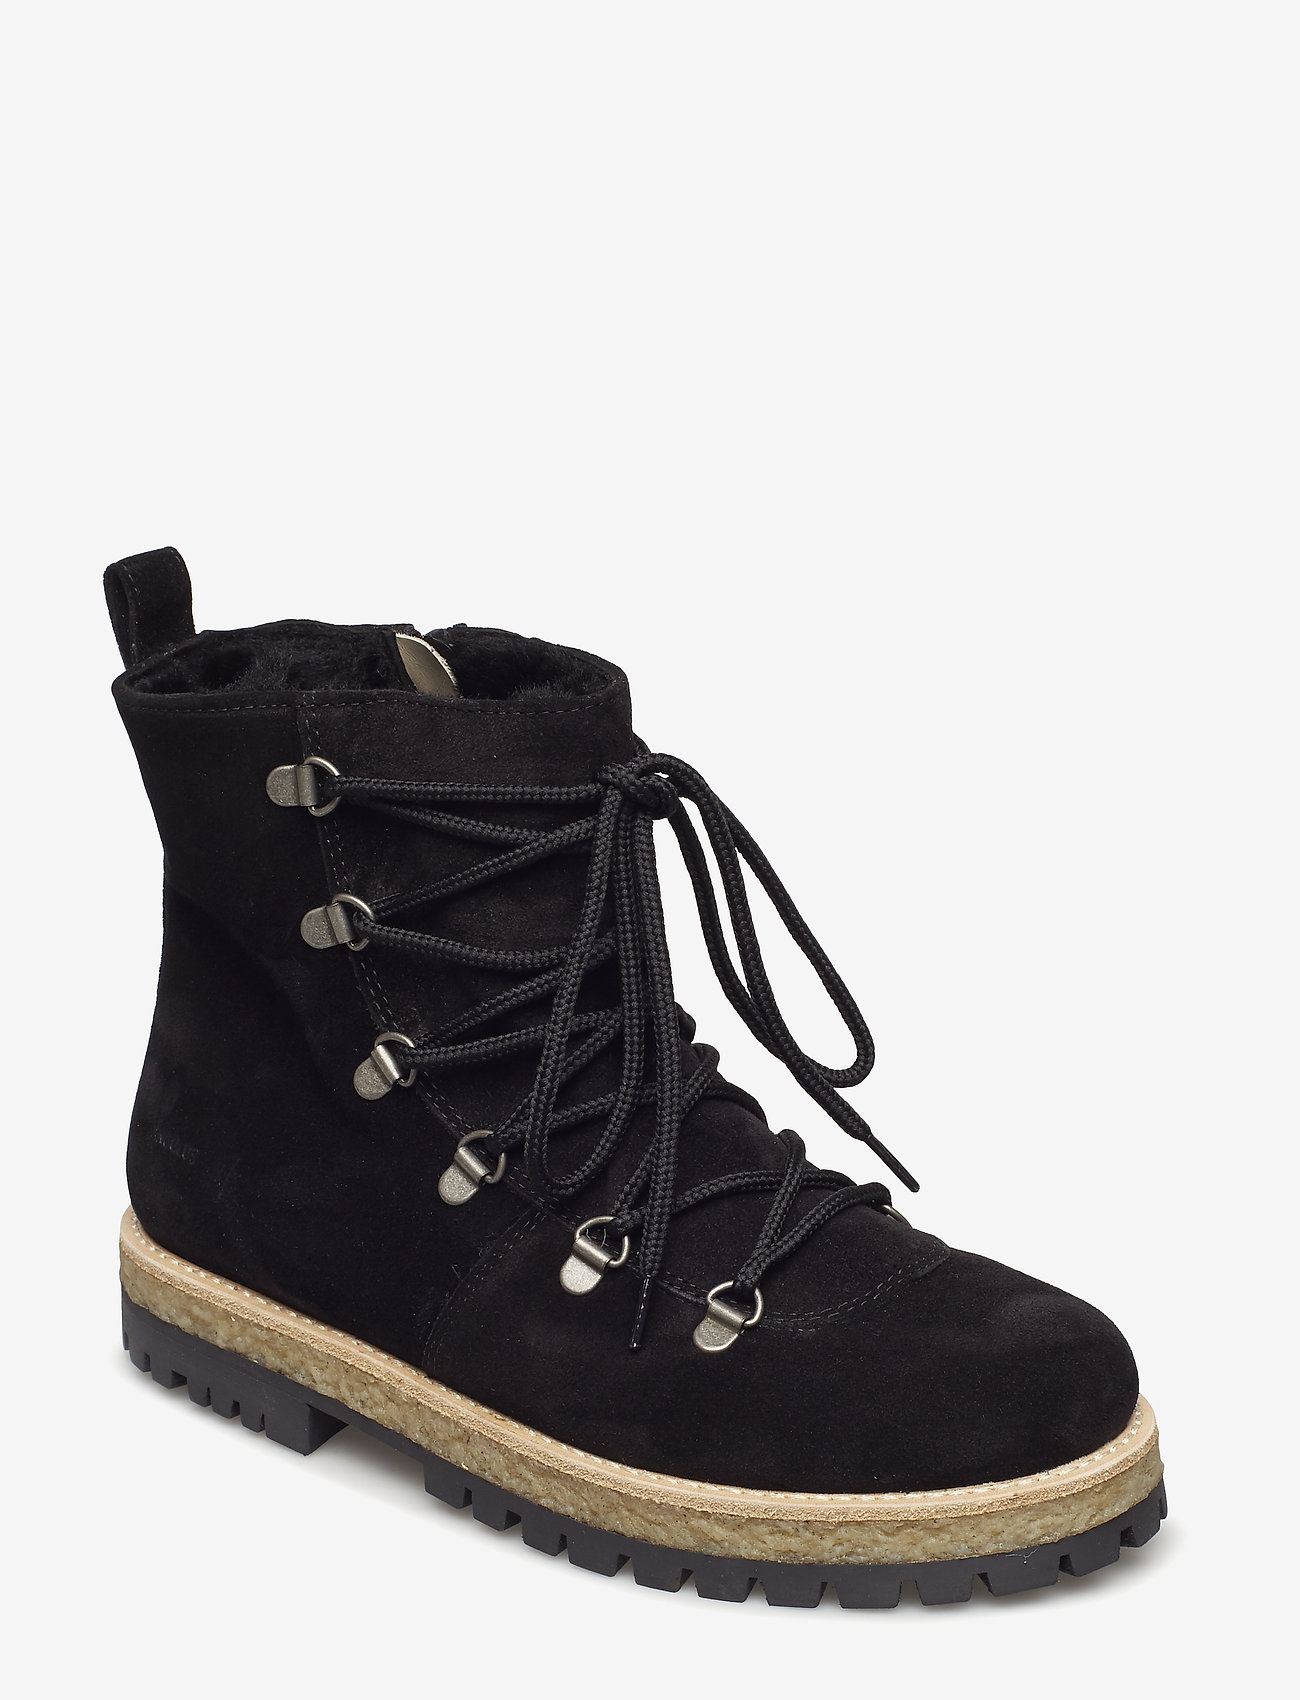 ANGULUS - Boots - flat - with laces - flat ankle boots - 1163/2014 black/black lamb woo